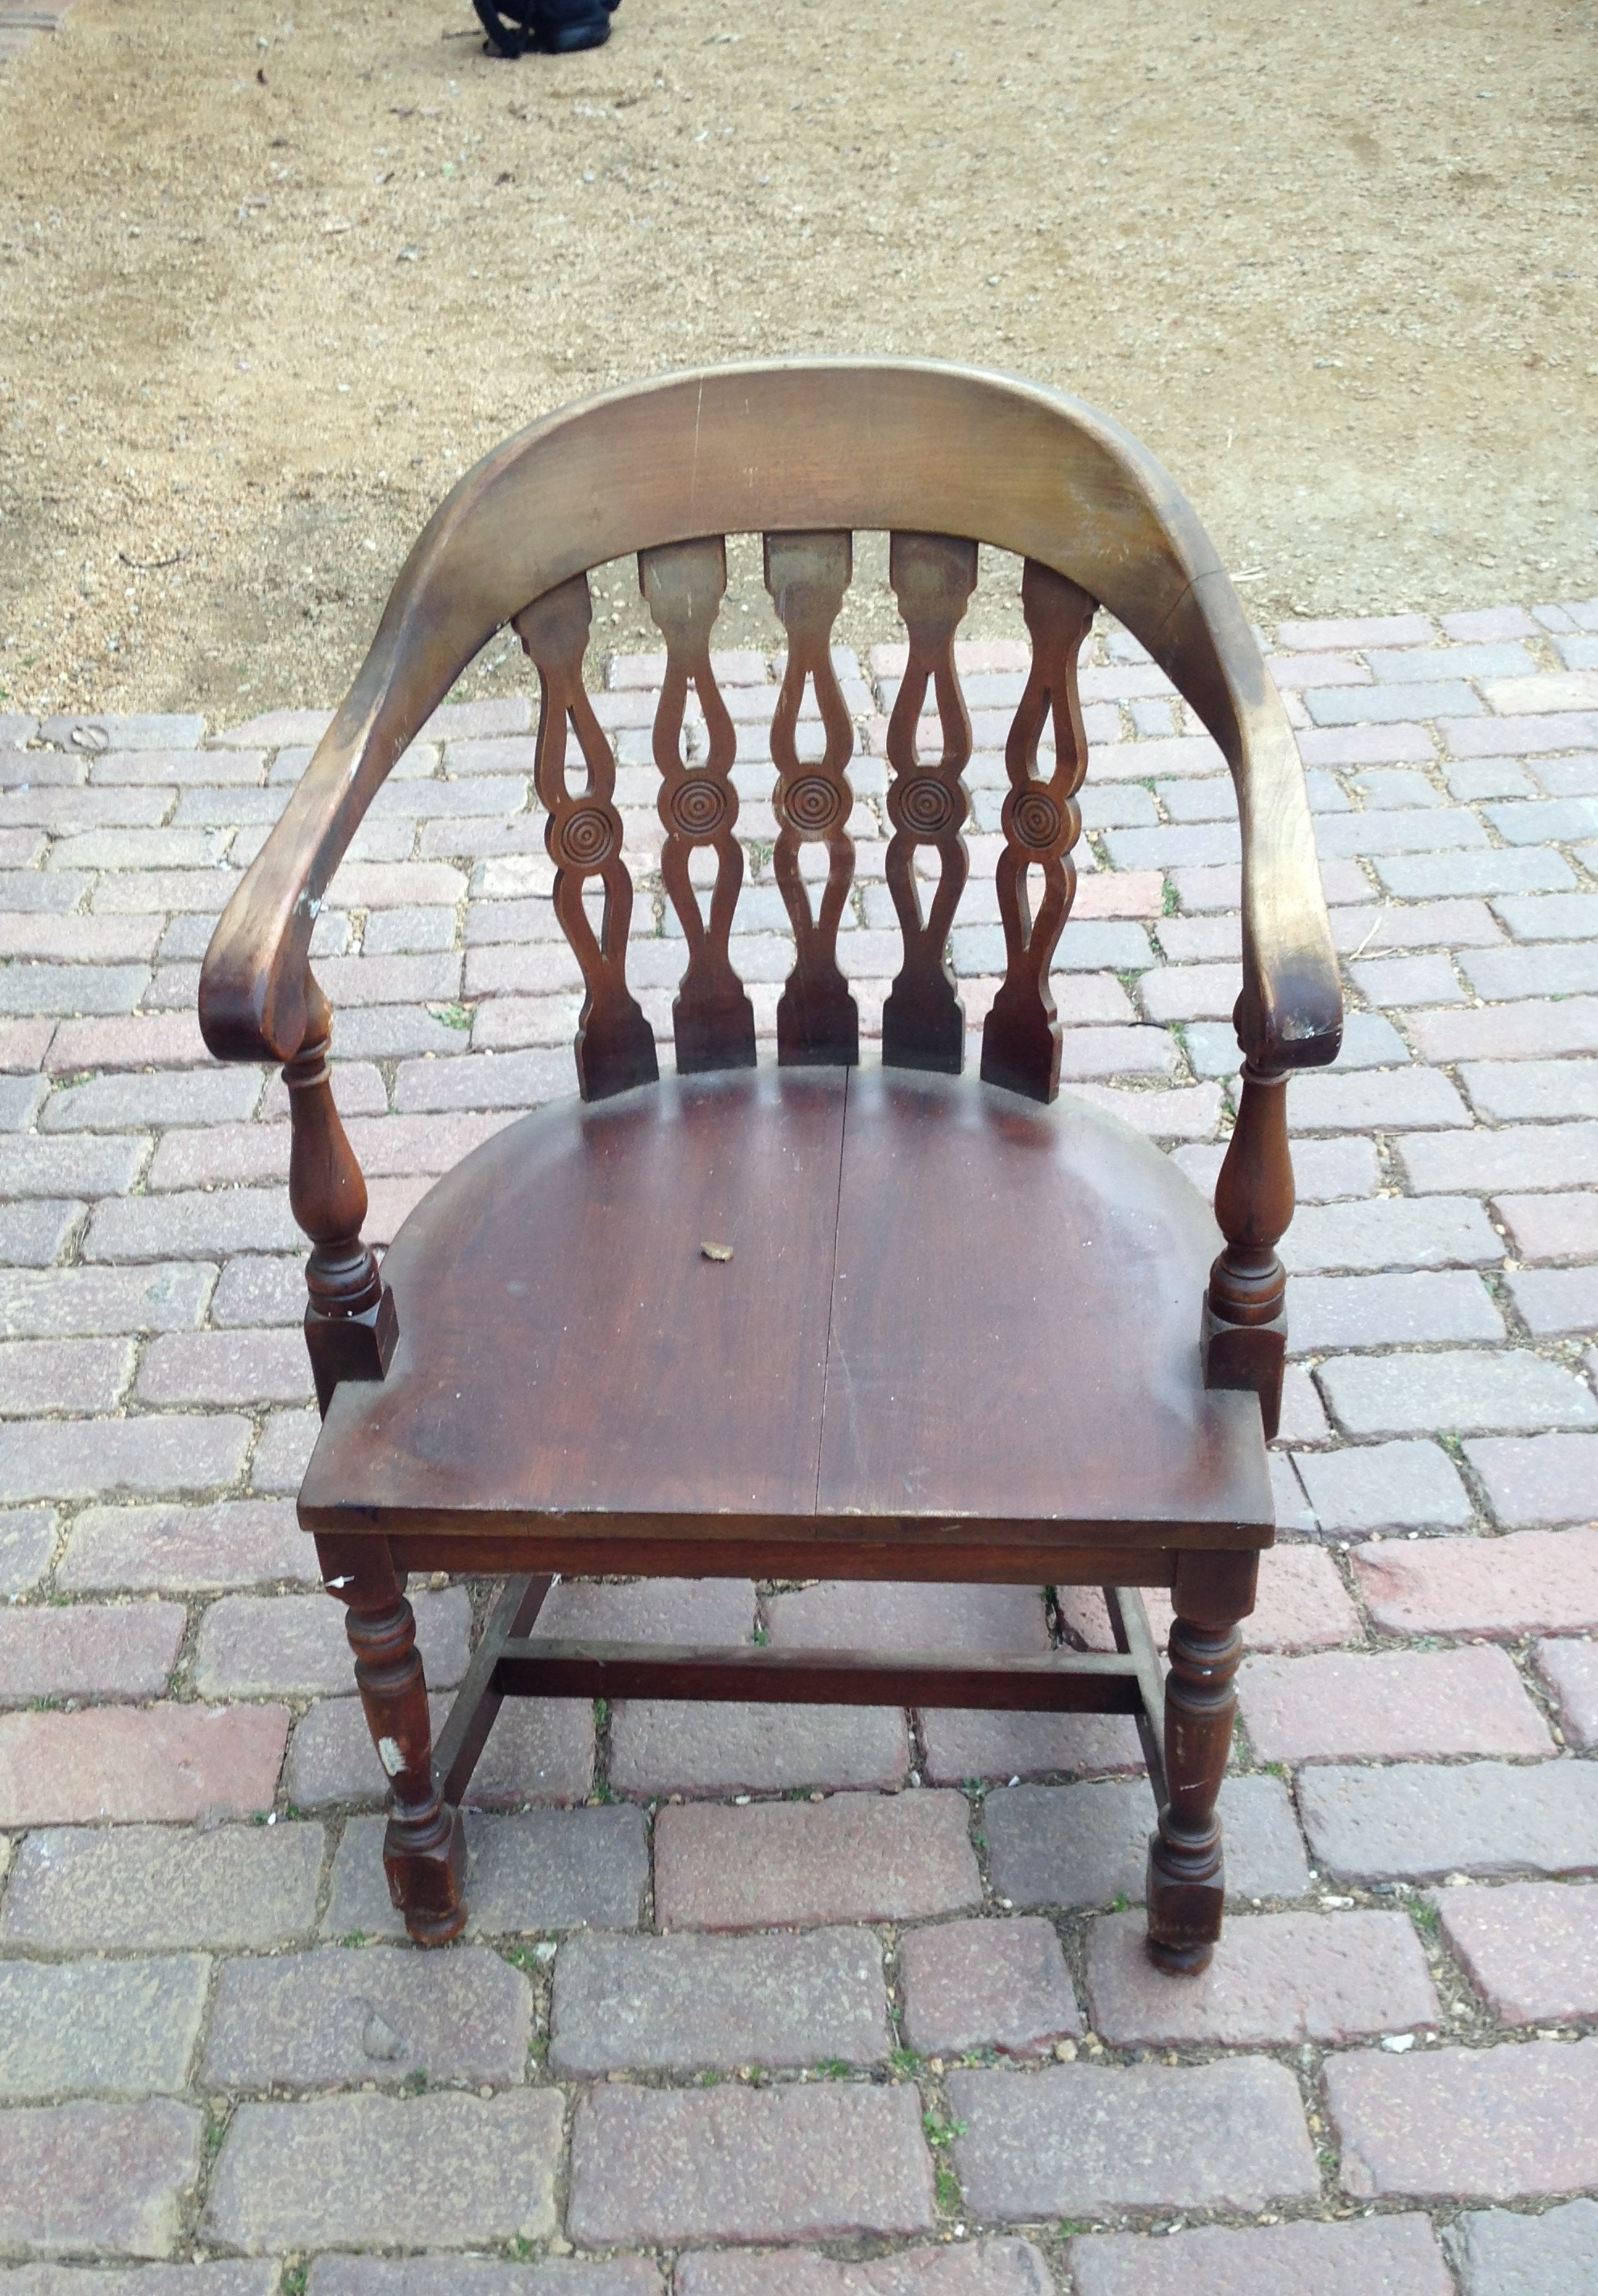 One of a pair of vintage Kittinger arm chairs